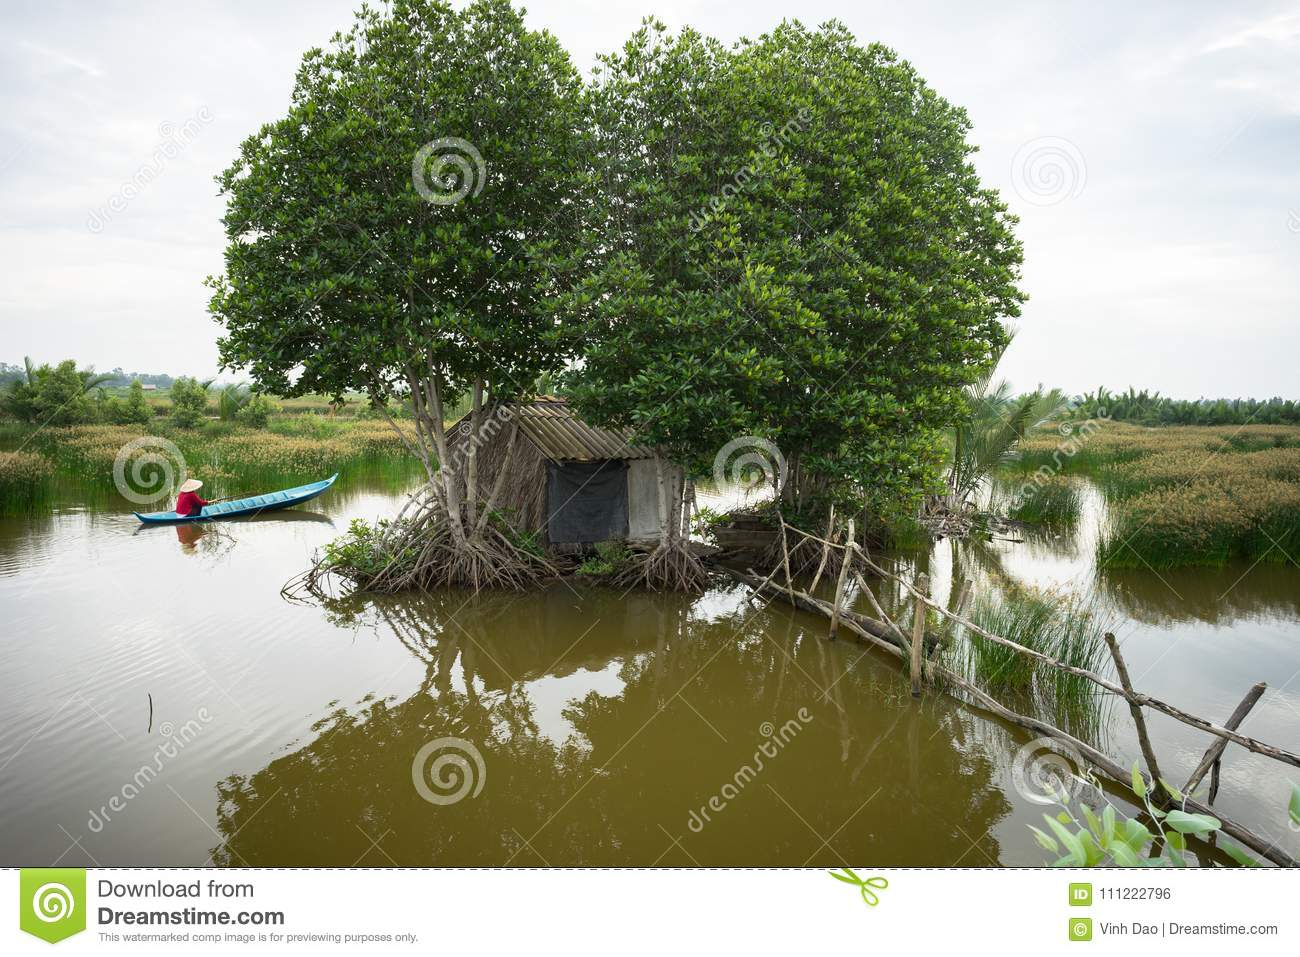 Landscape of Mekong delta with mangrove tree, floating house and rowing boat in Ca Mau province, Mekong delta, south of Vietnam